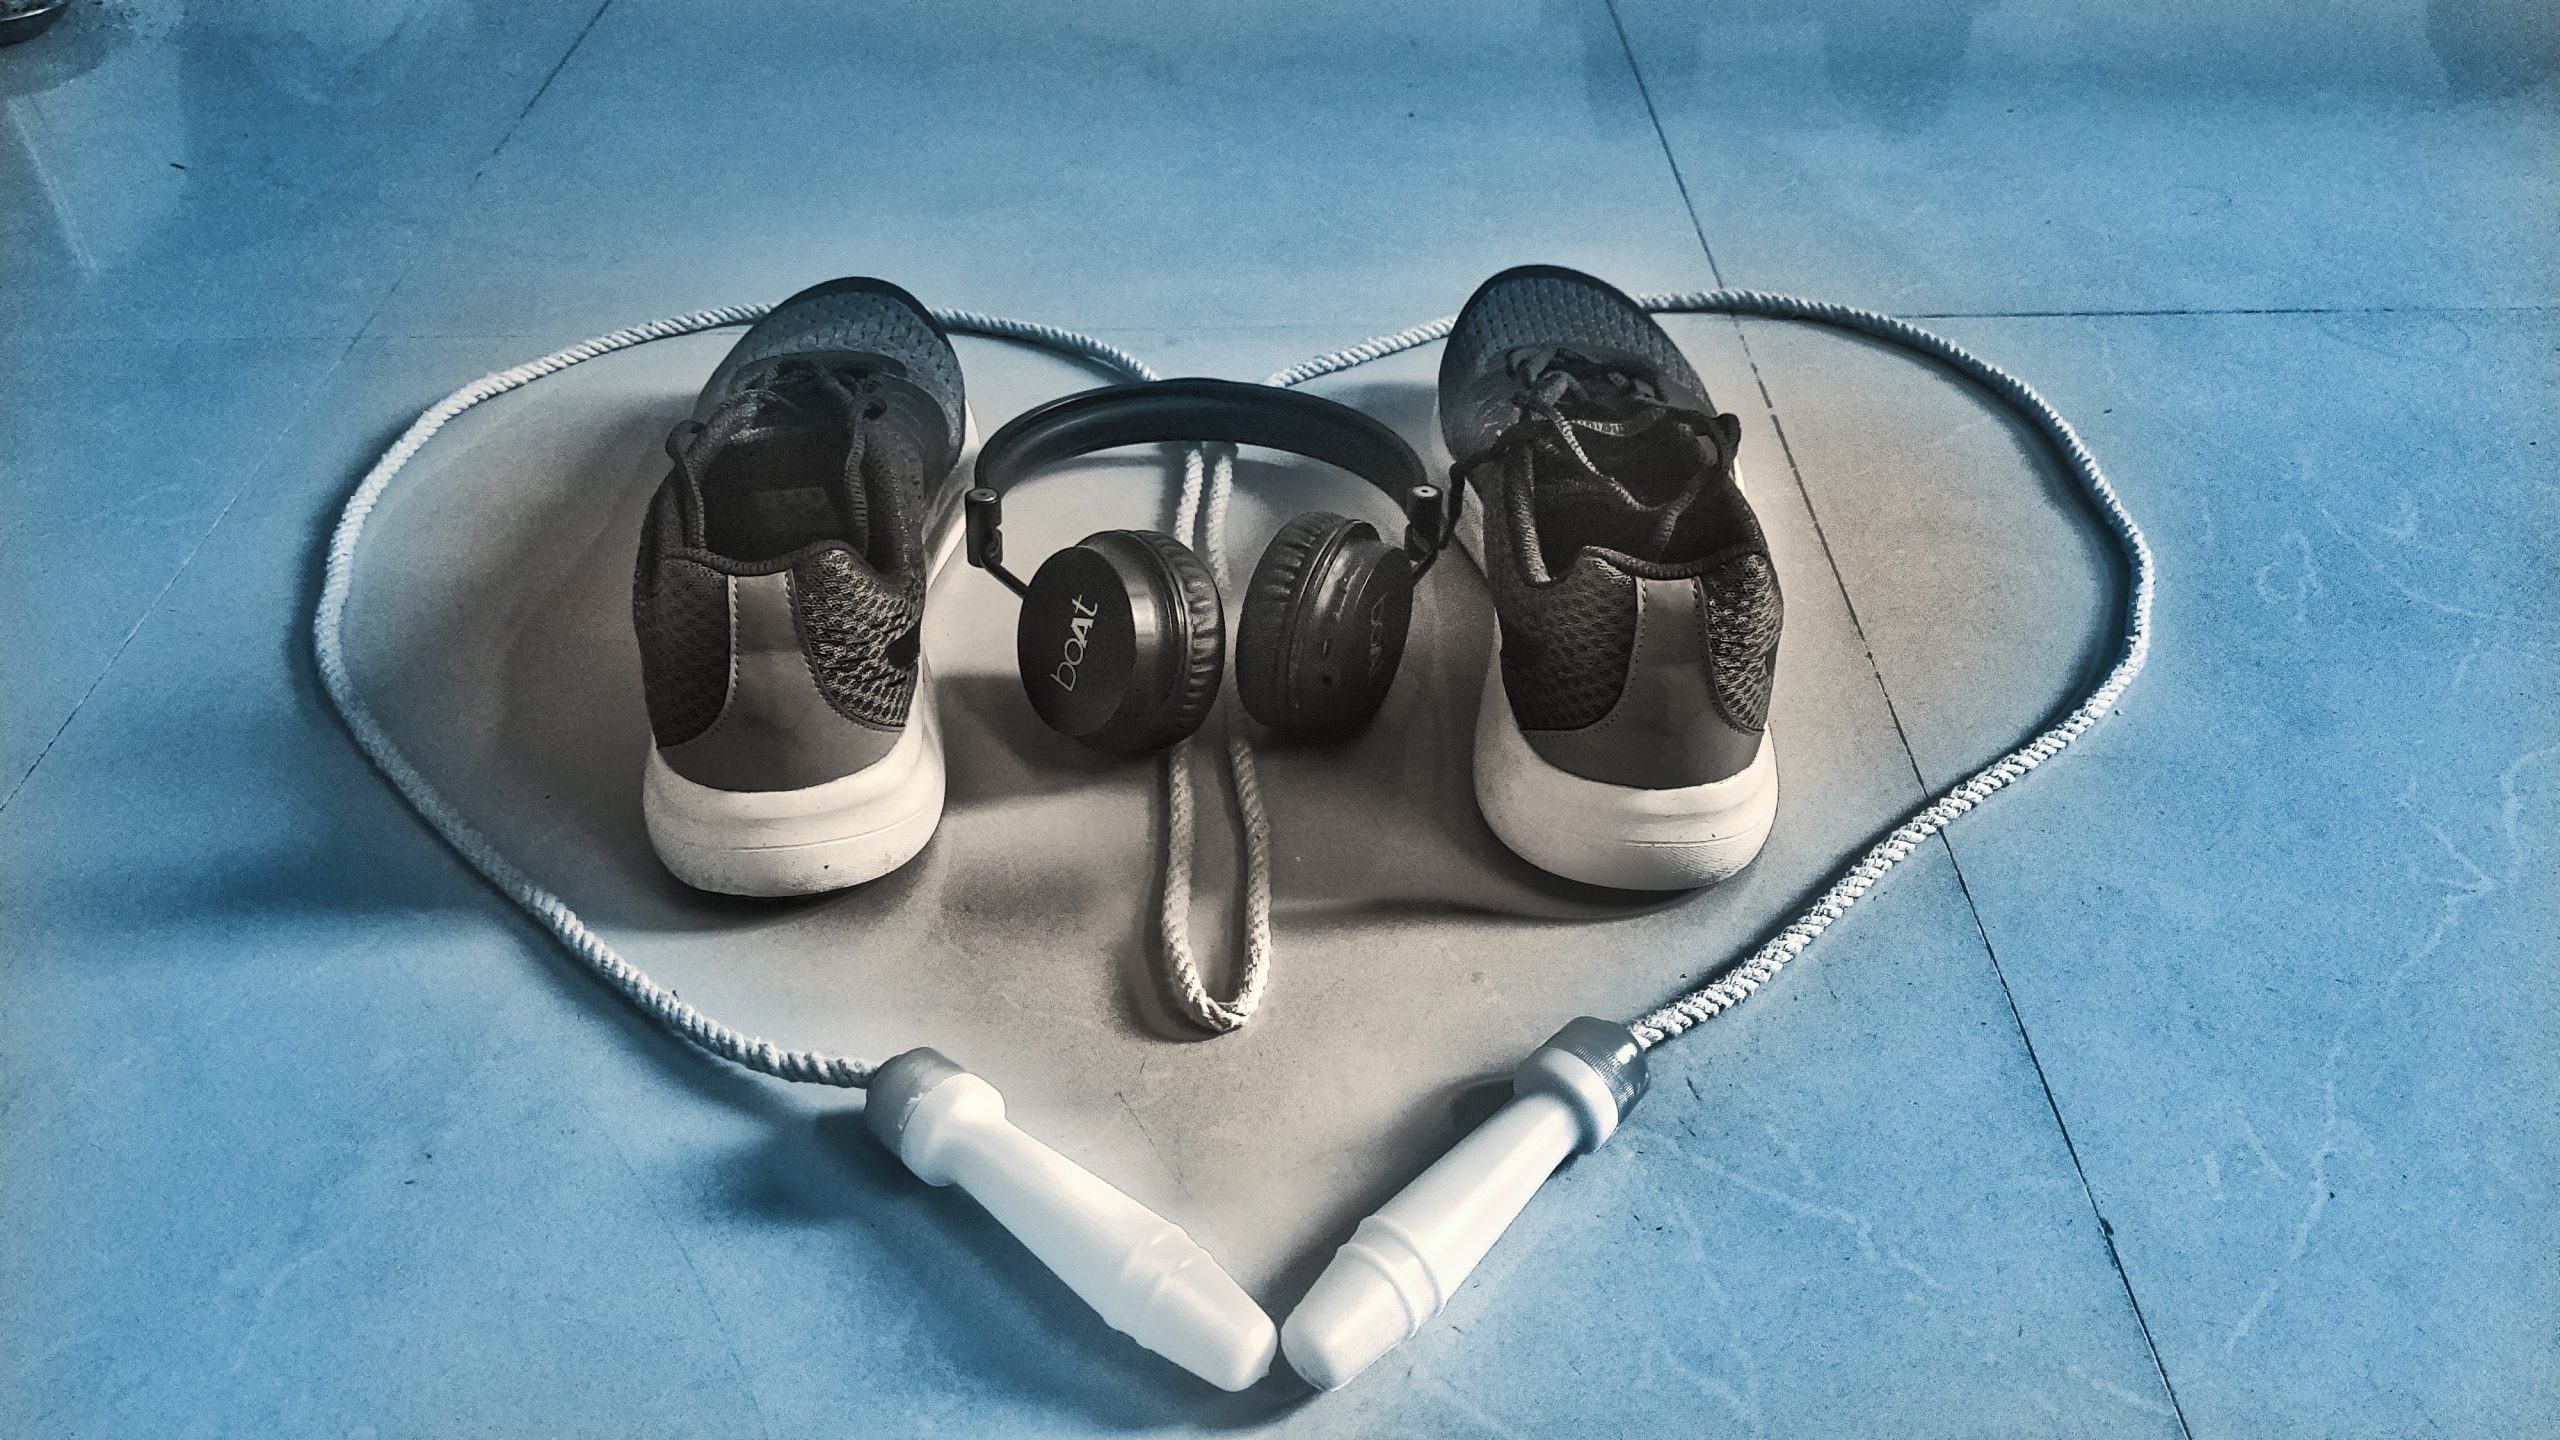 Jumping rope, headset and shoes